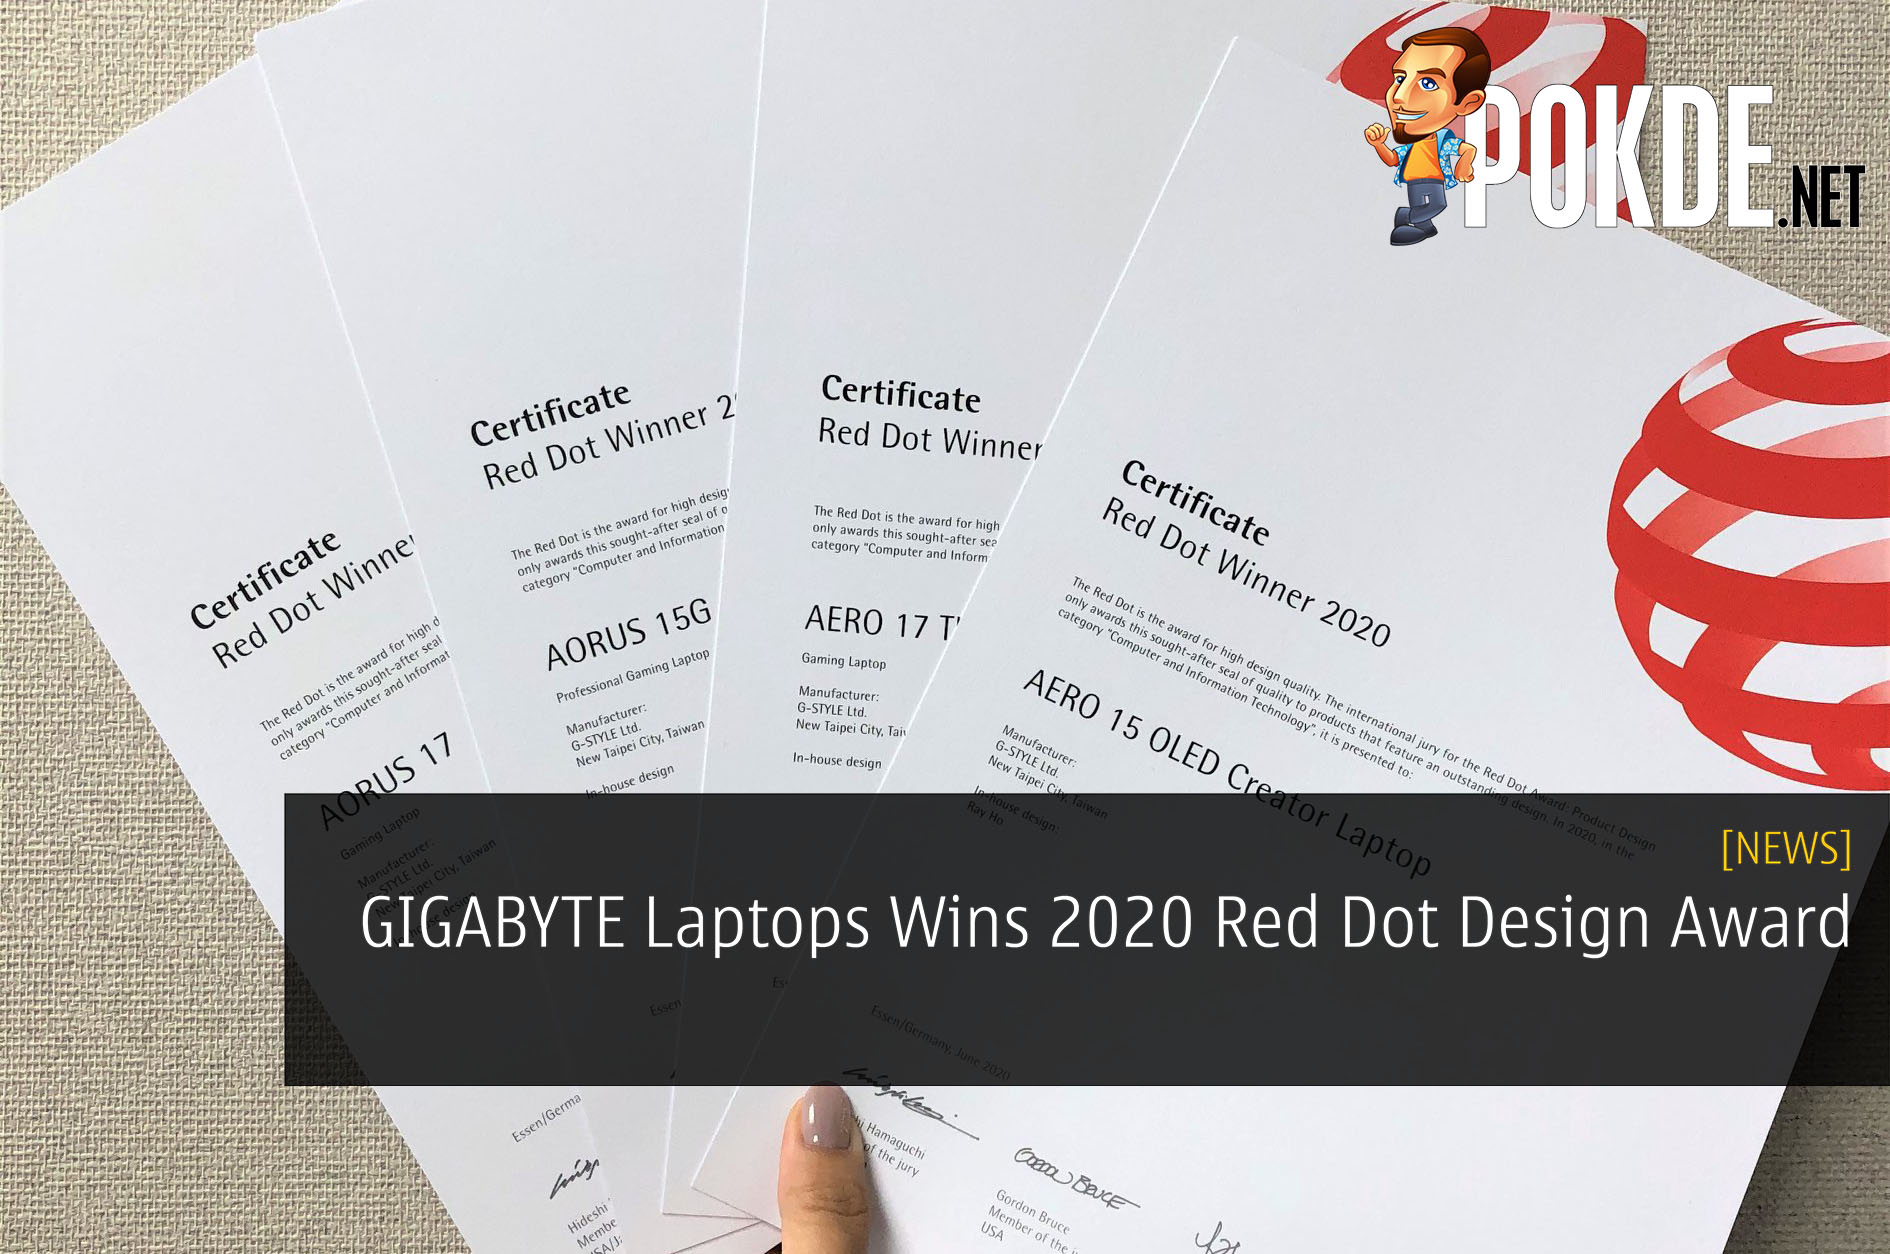 GIGABYTE Laptops Wins 2020 Red Dot Design Award 8